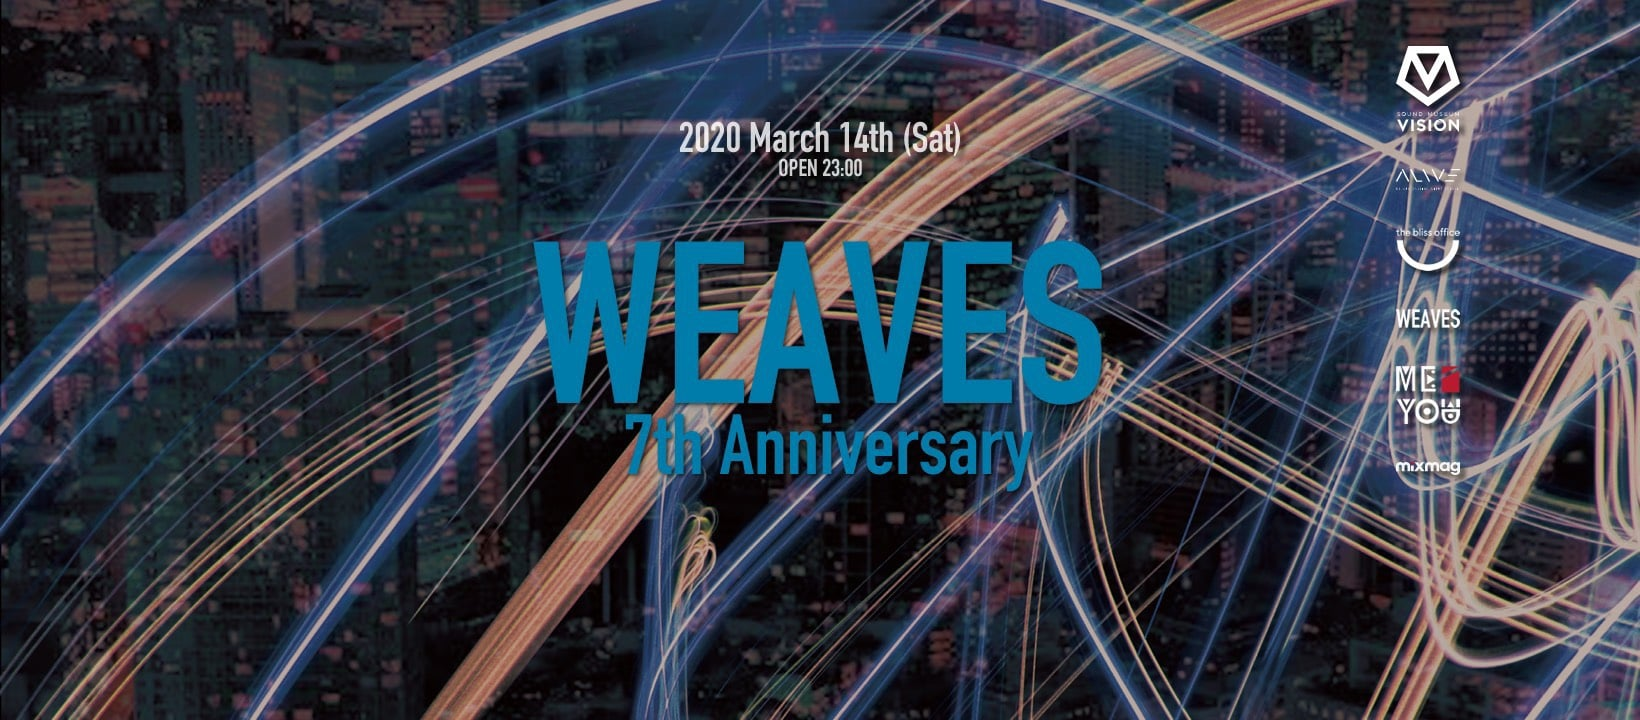 ALIVE presents WEAVES 7th Anniversary